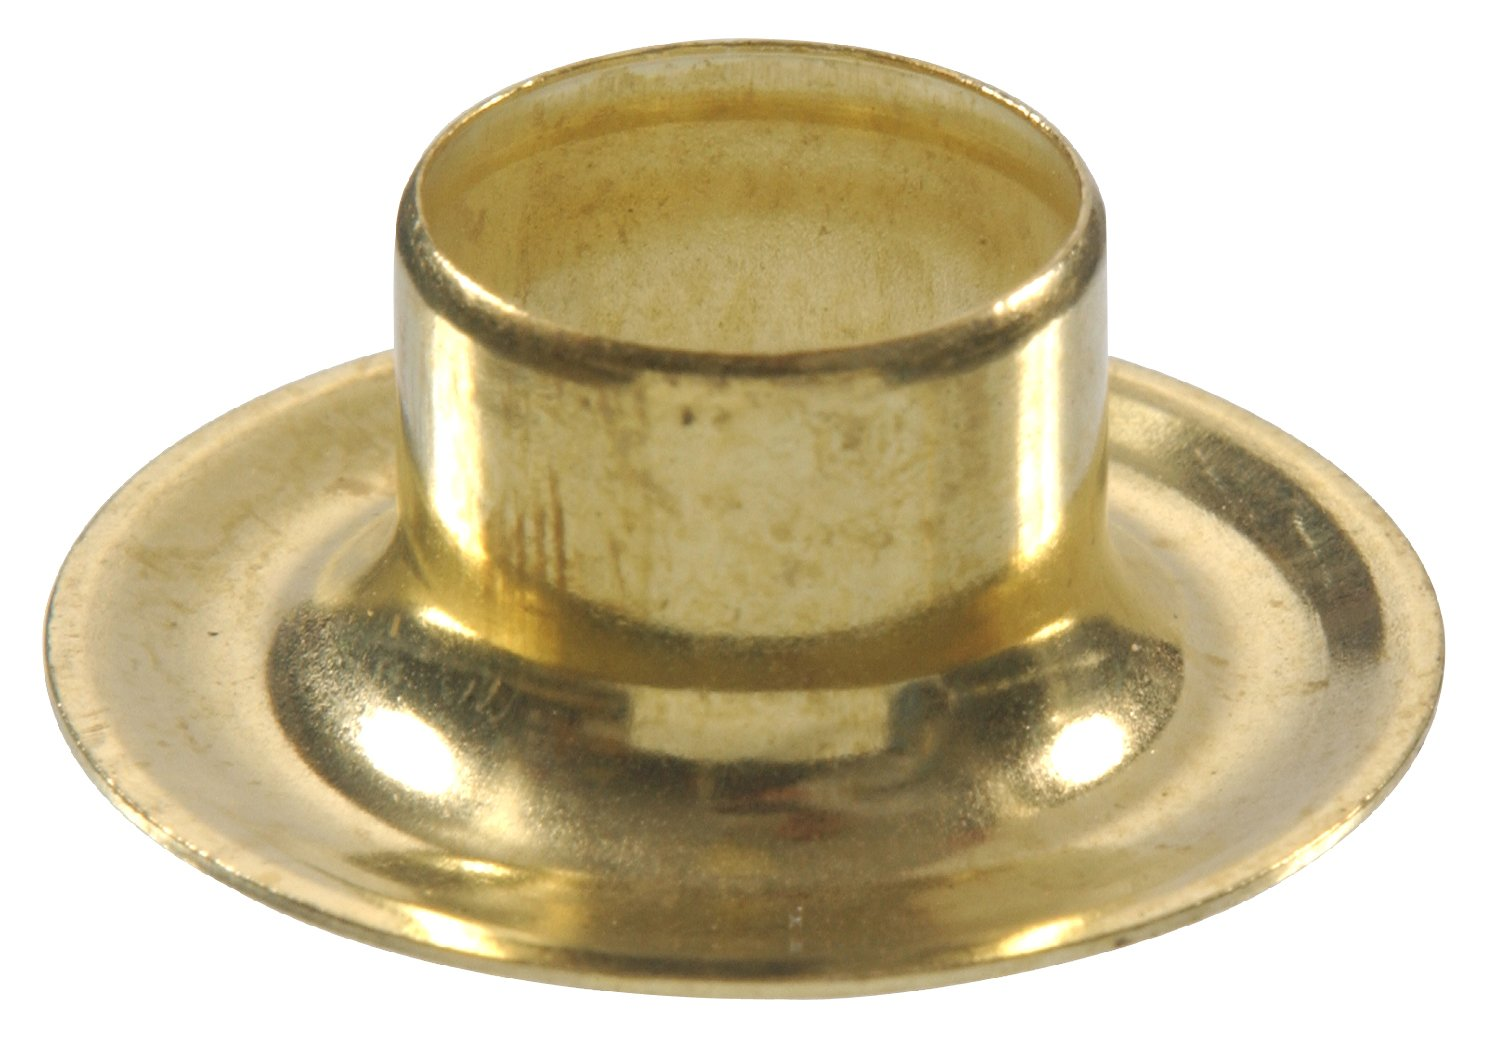 The Hillman Group 58278 Brass Grommet & Washer, 1/2-Inch, 10-Pack